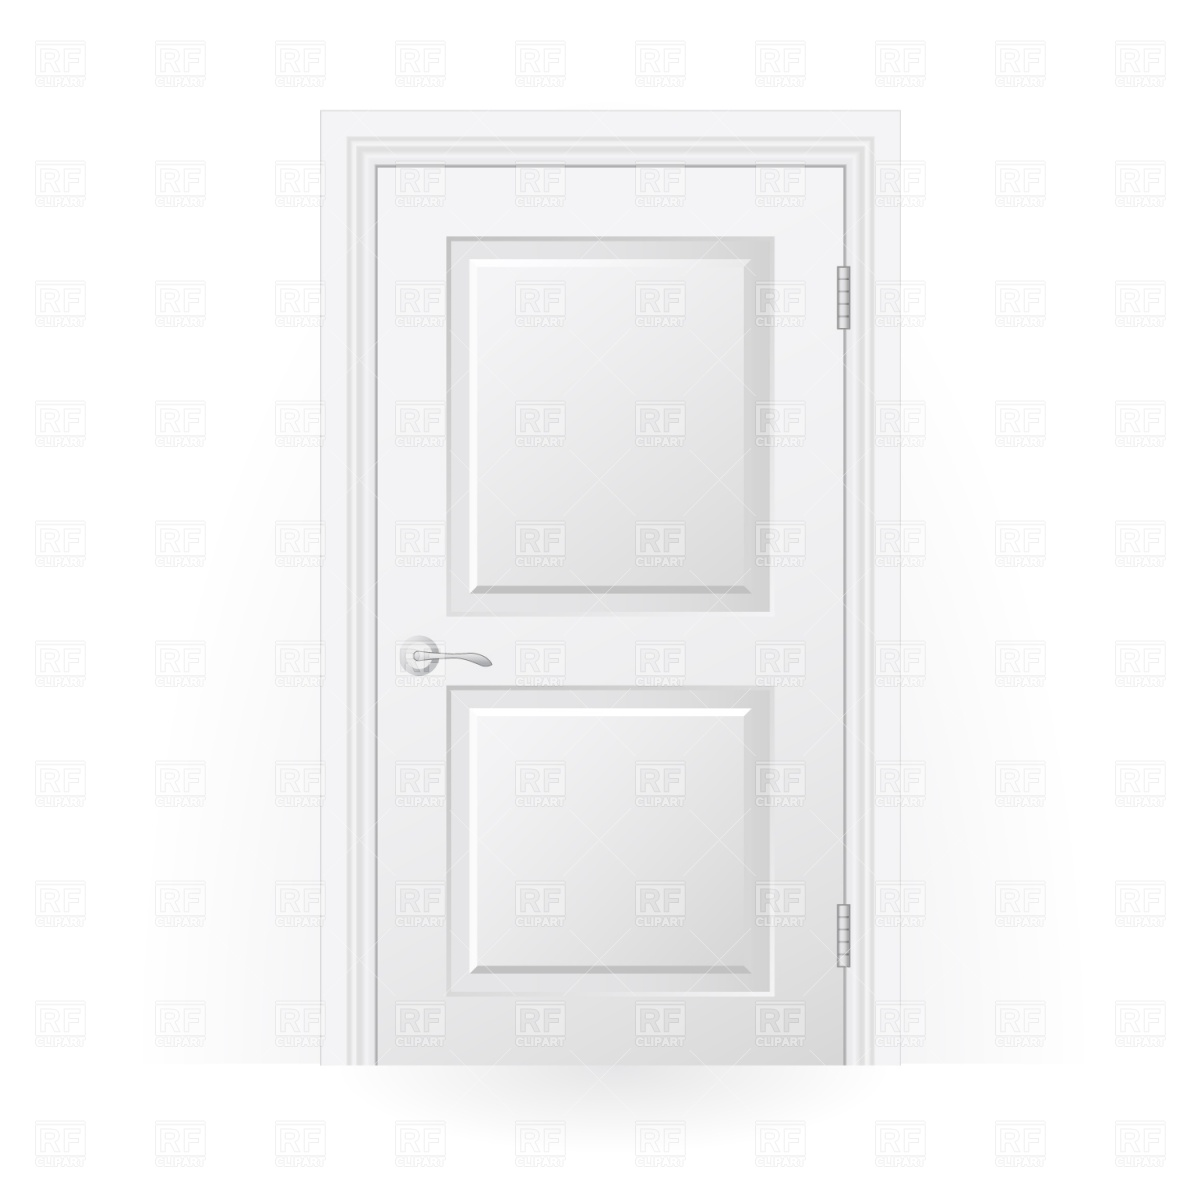 Closed double door clipart image stock Closed Doors Clipart Awesome Ideas 19625 Doors - hyunky.com image stock